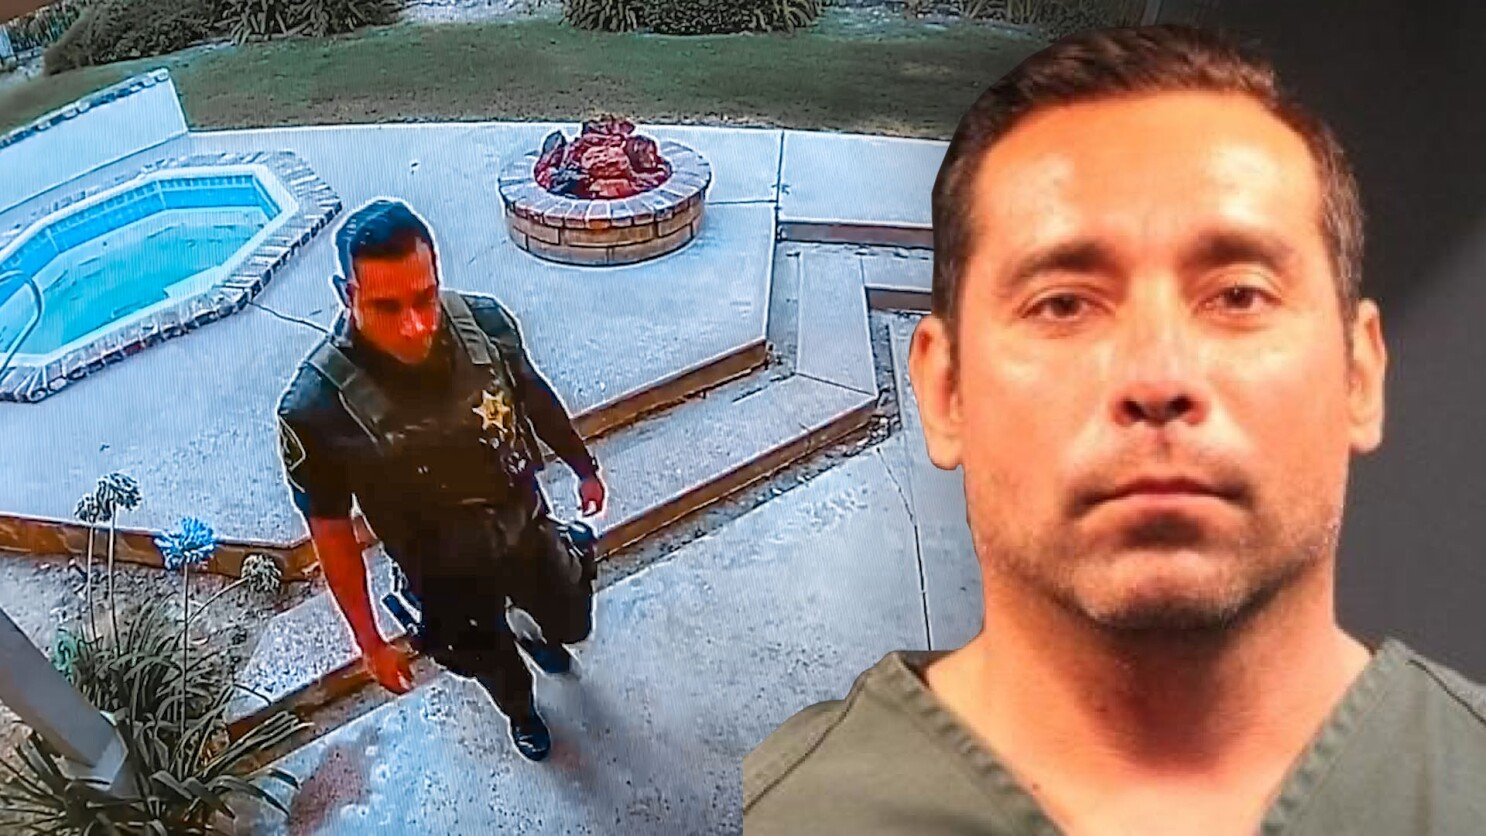 Orange County Deputy burglarized home after responding to death there